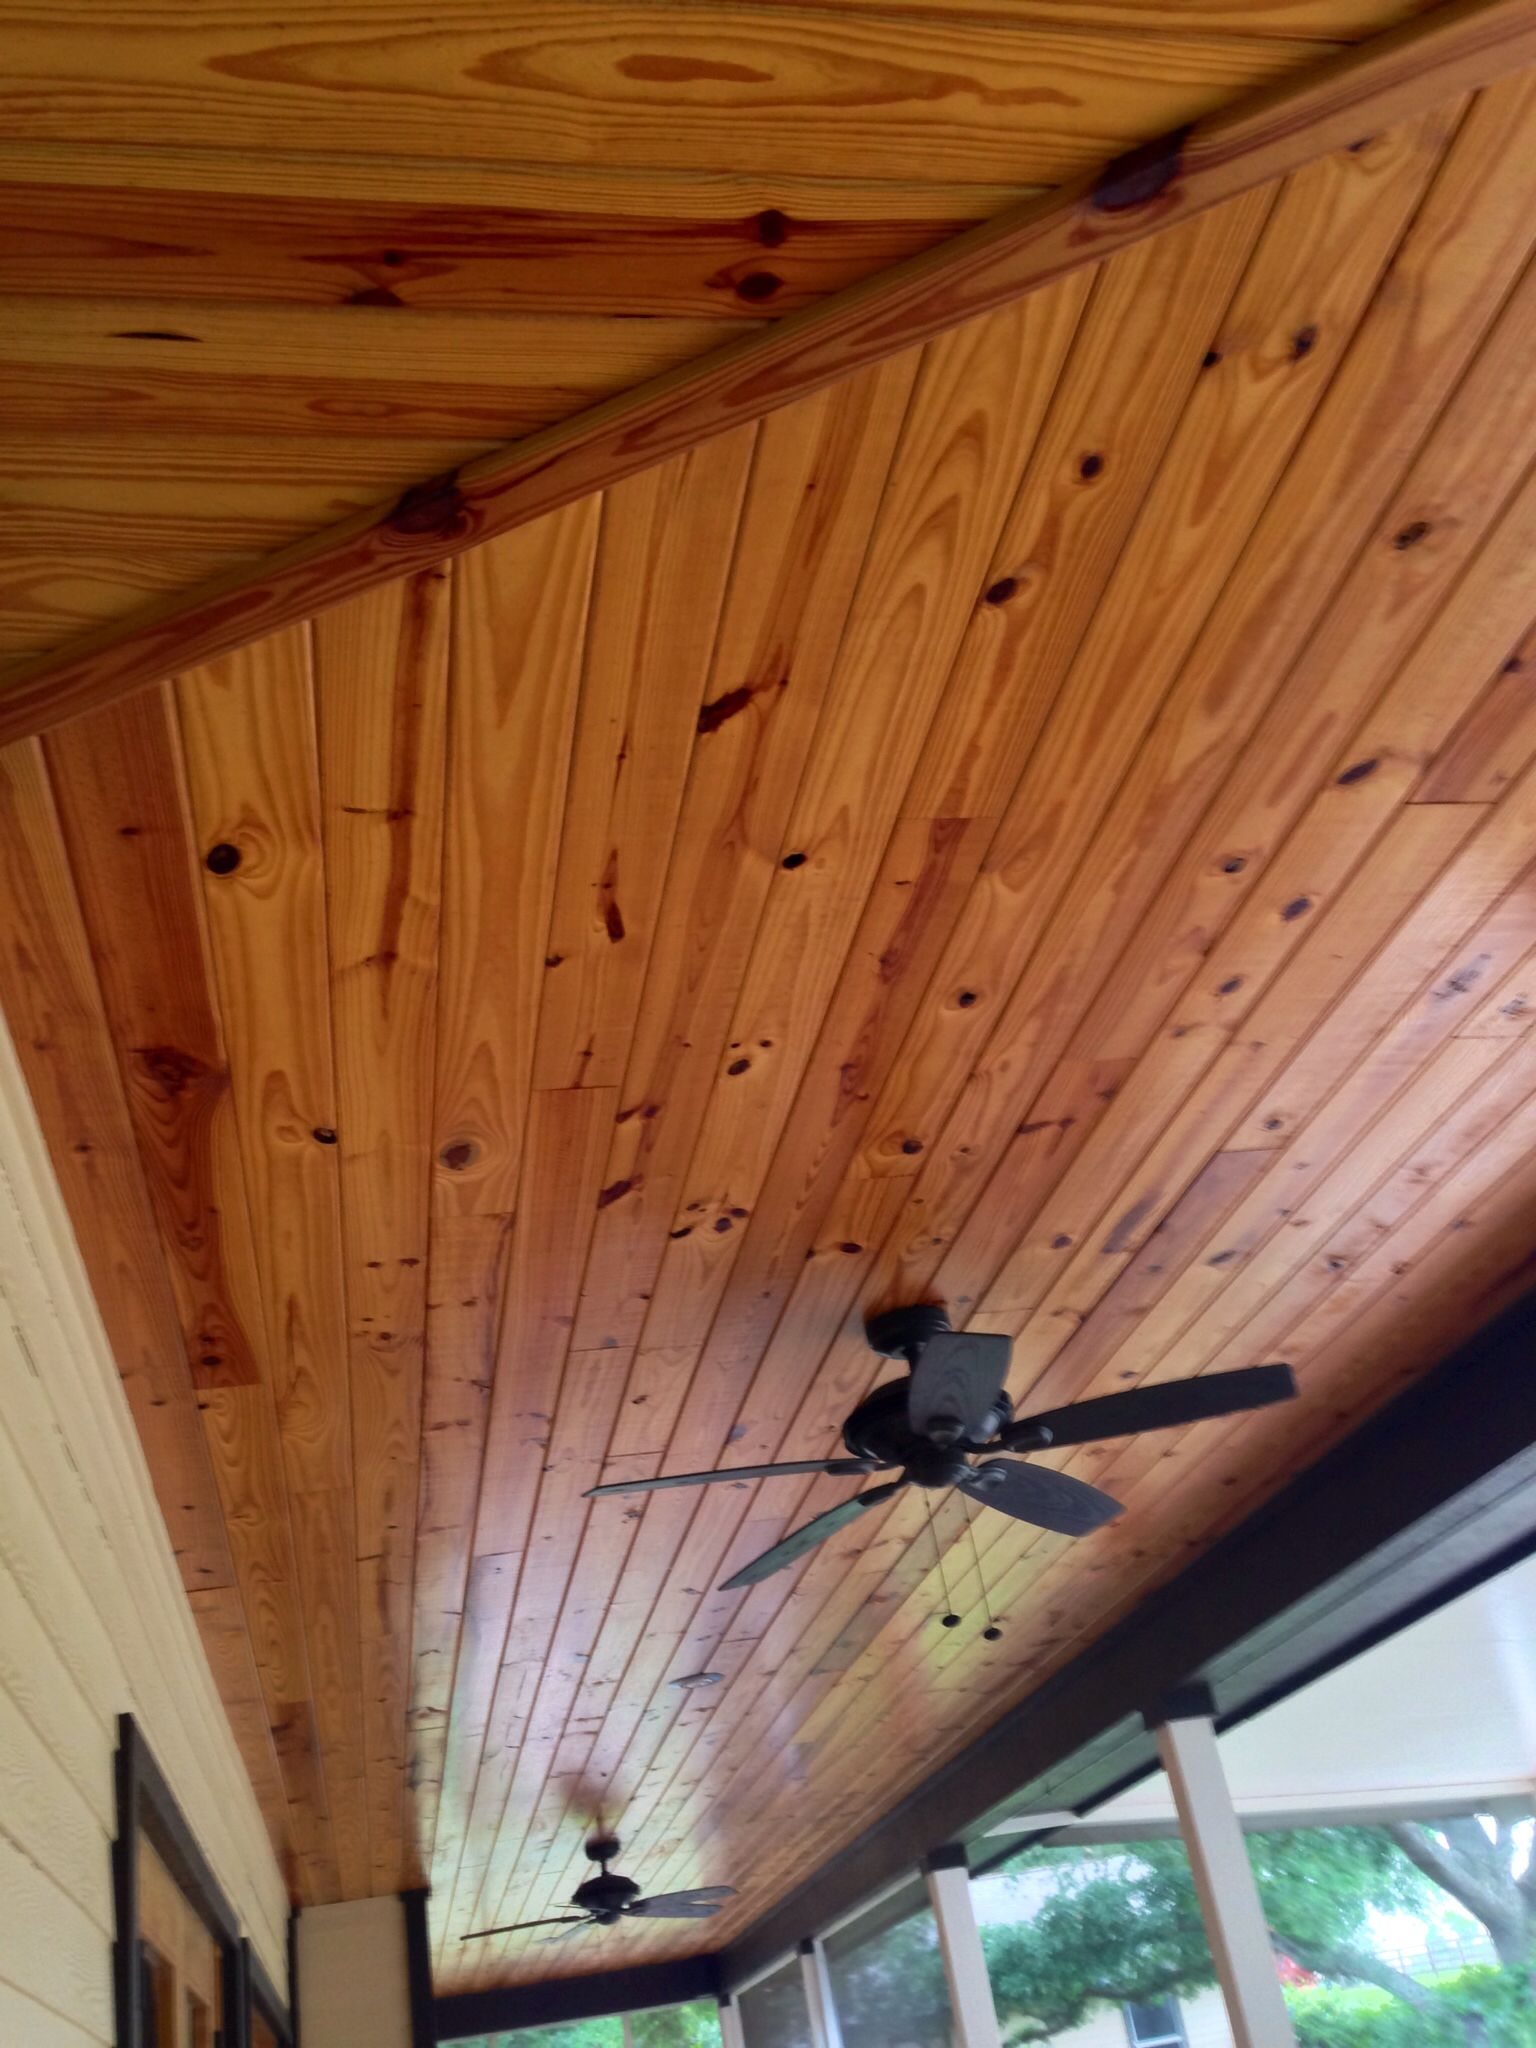 Tongue And Groove Pine Ceiling By Jb Precision Carpentry Inc Tongue And Groove Tongue And Groove Walls House With Porch